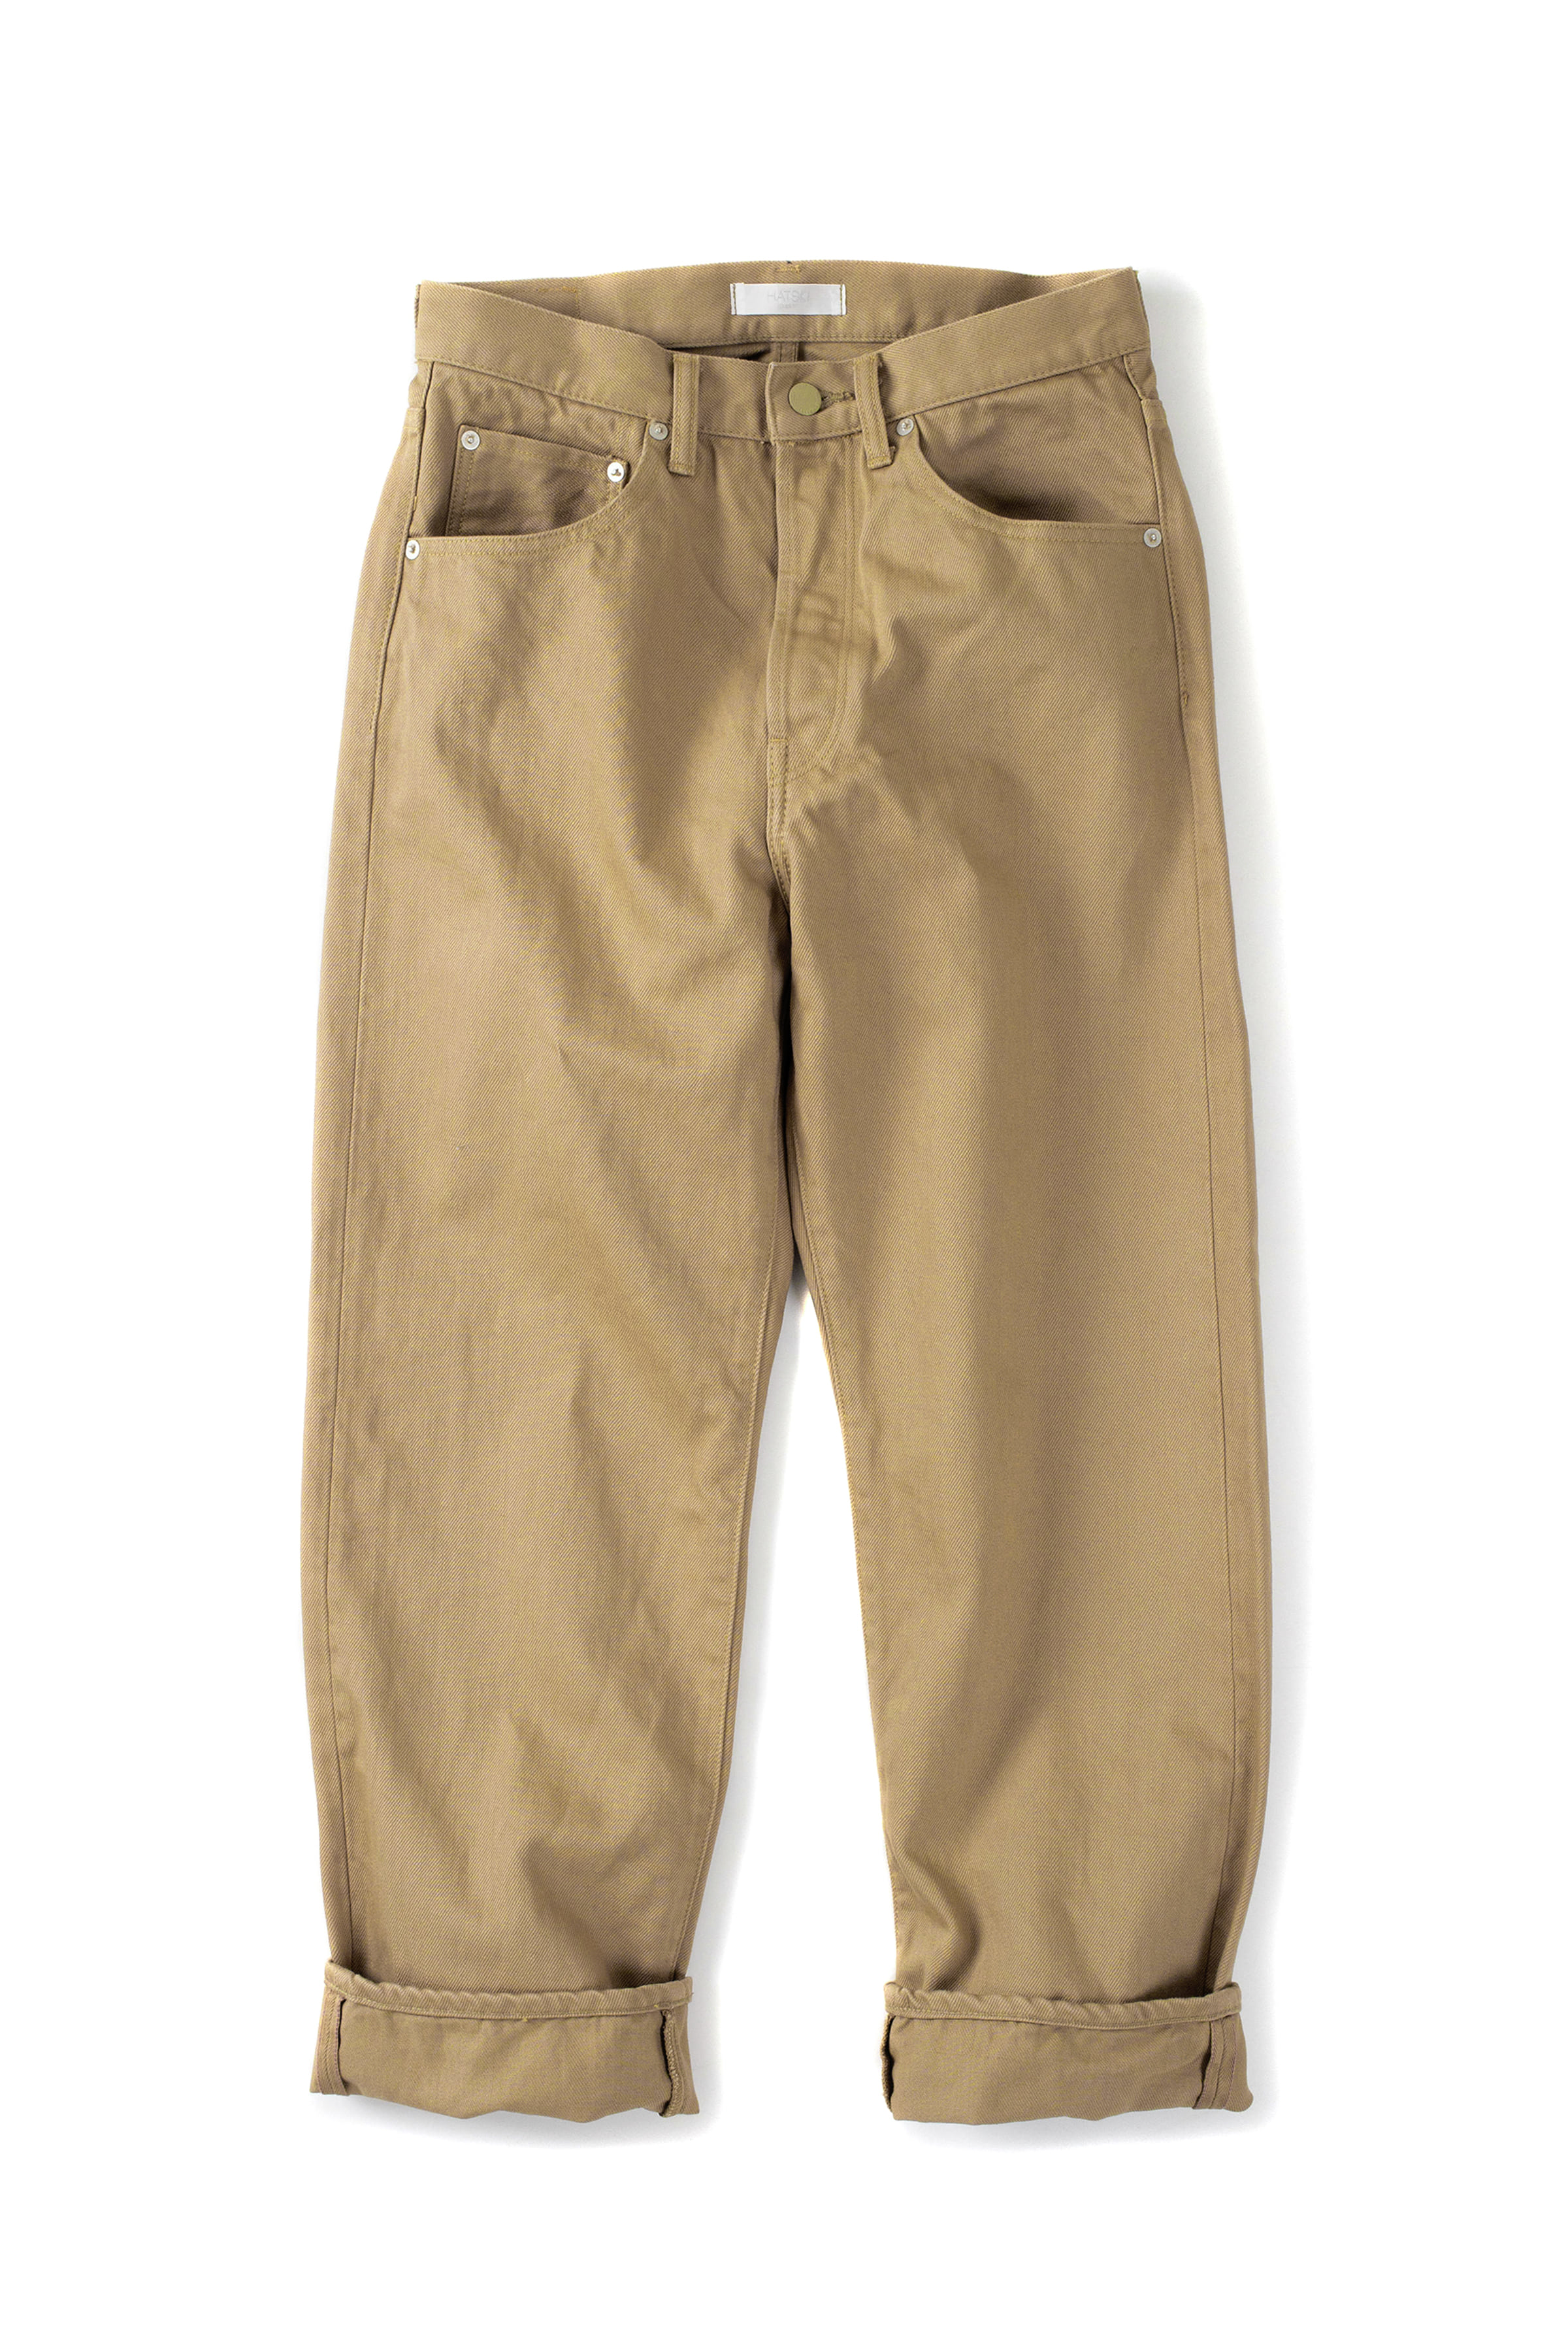 HATSKI : 18004 Loose Tapered Denim (Beige)